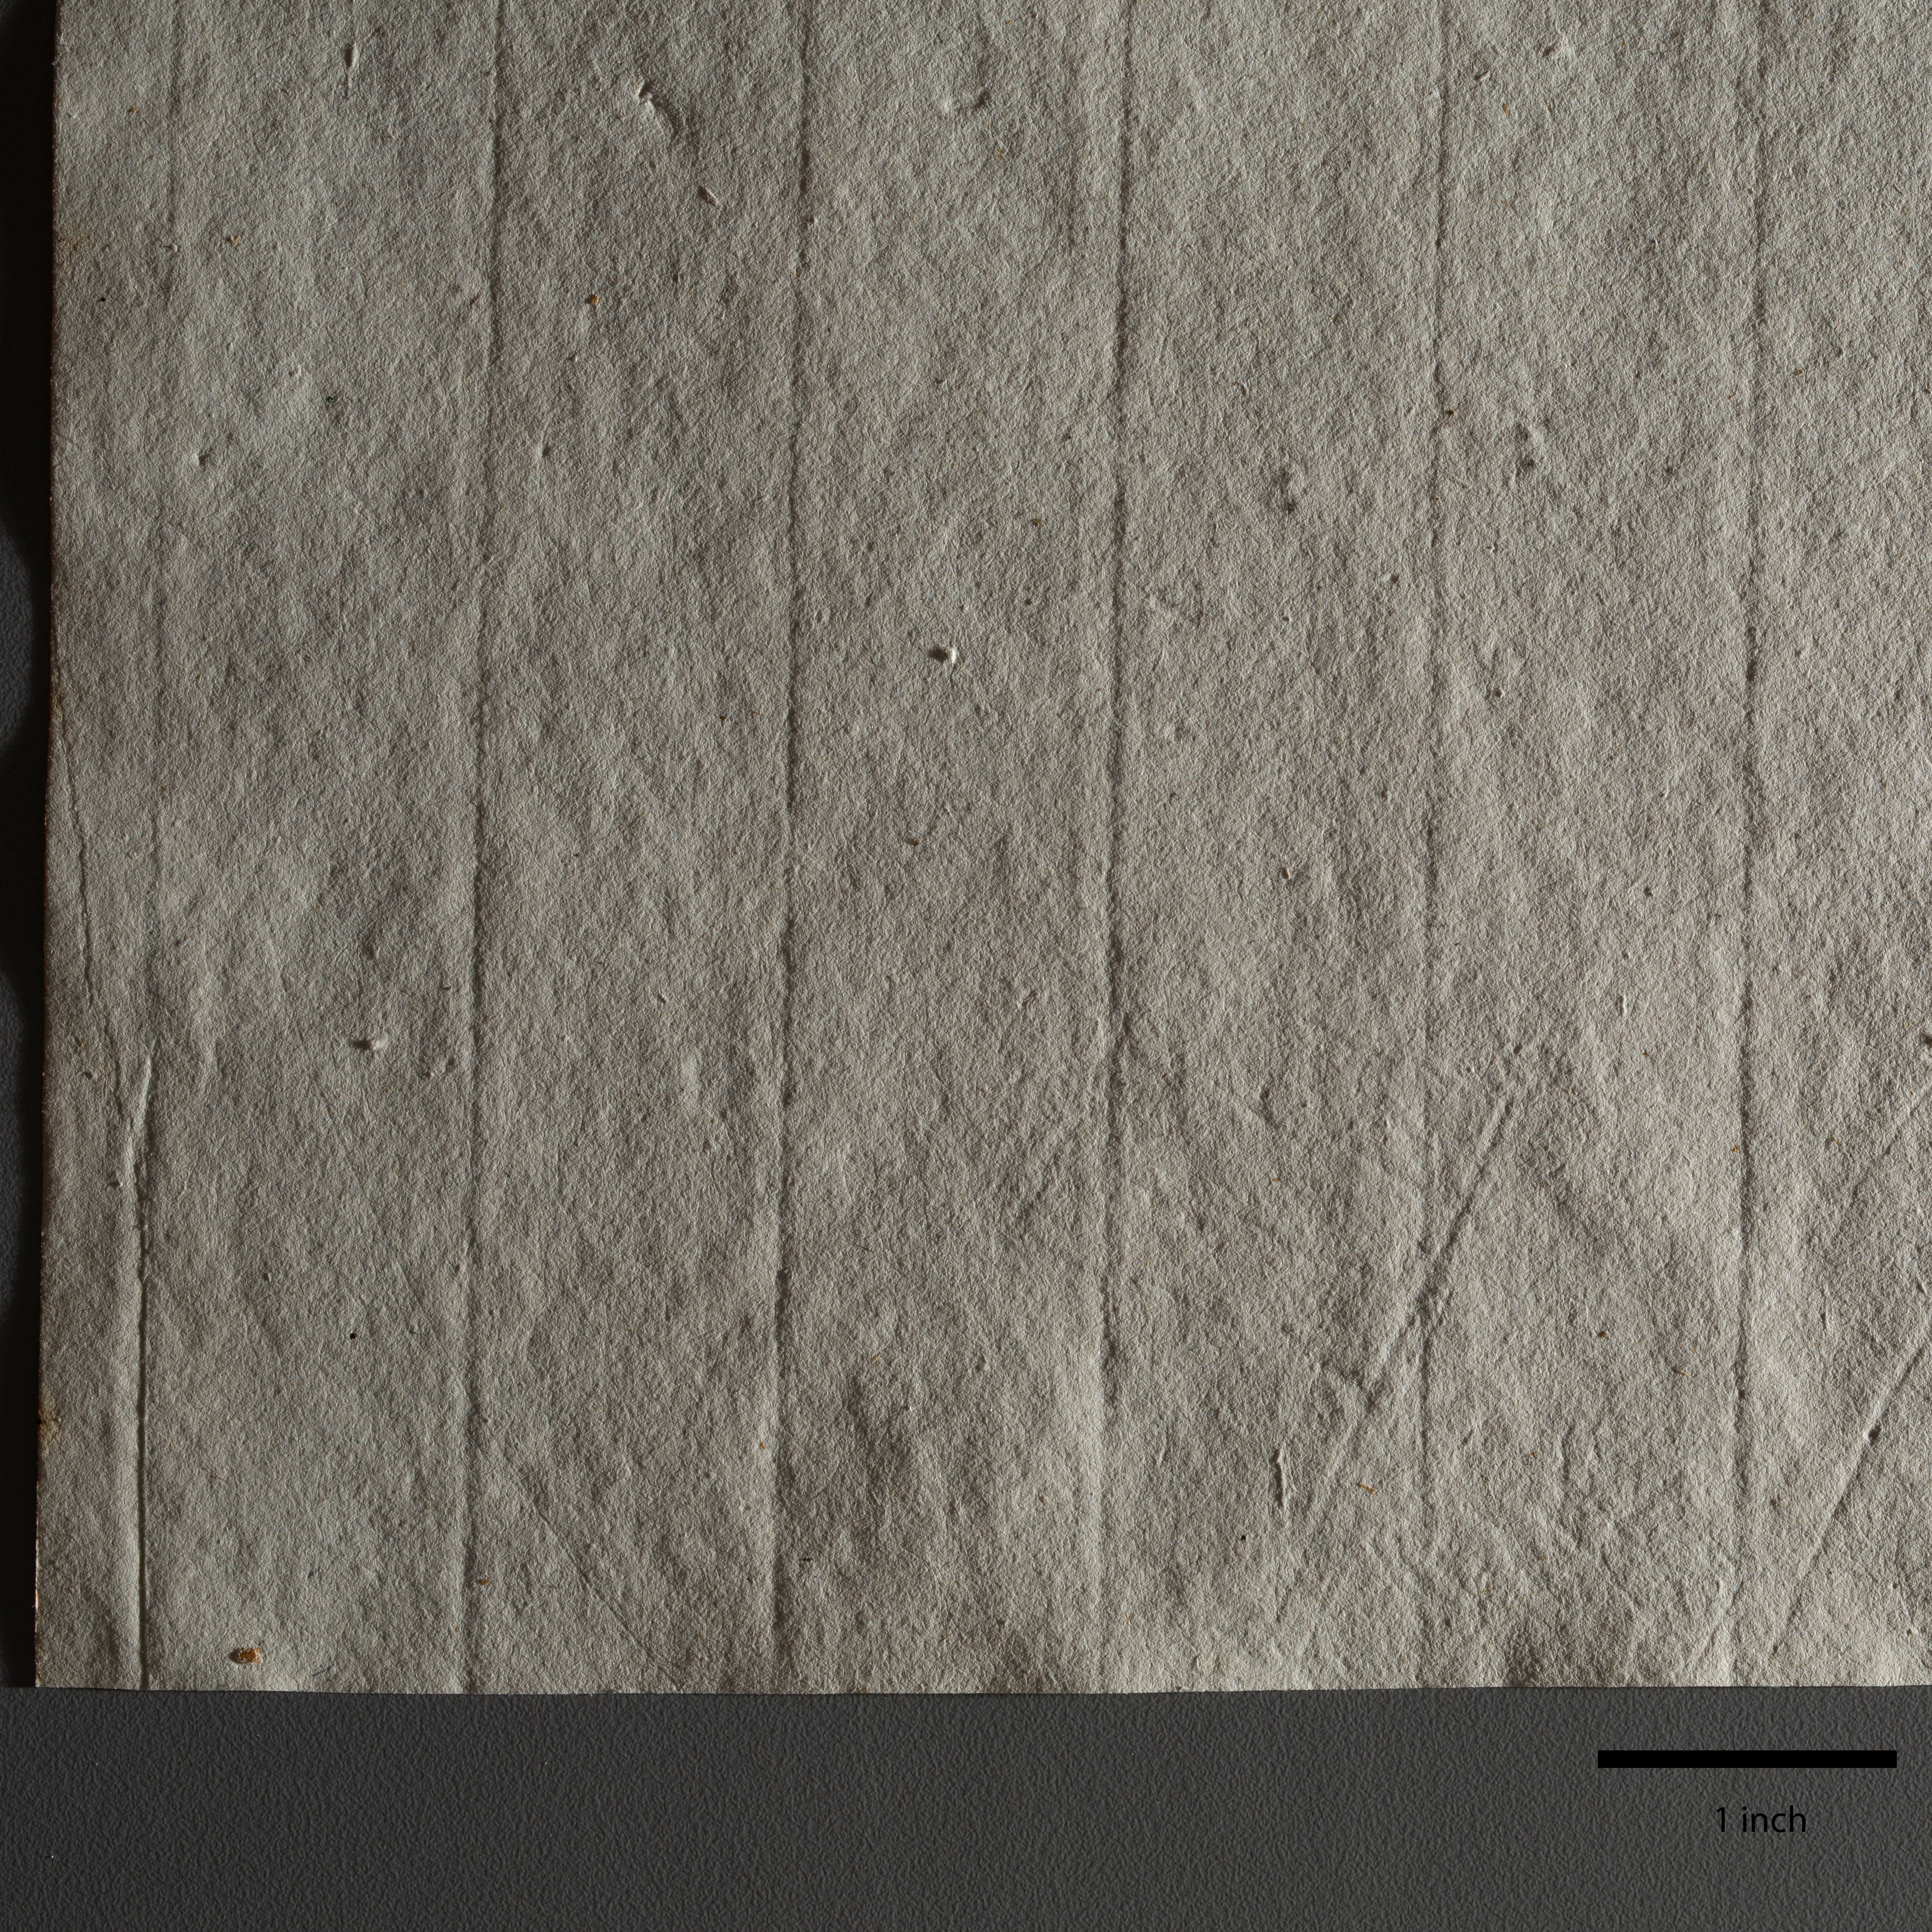 This photograph shows a piece of paper very close up, with a soft, uneven texture and regular vertical lines, suggesting indentations. It is resting on a gray surface. Below the paper to the right is a thick black line marking one inch.